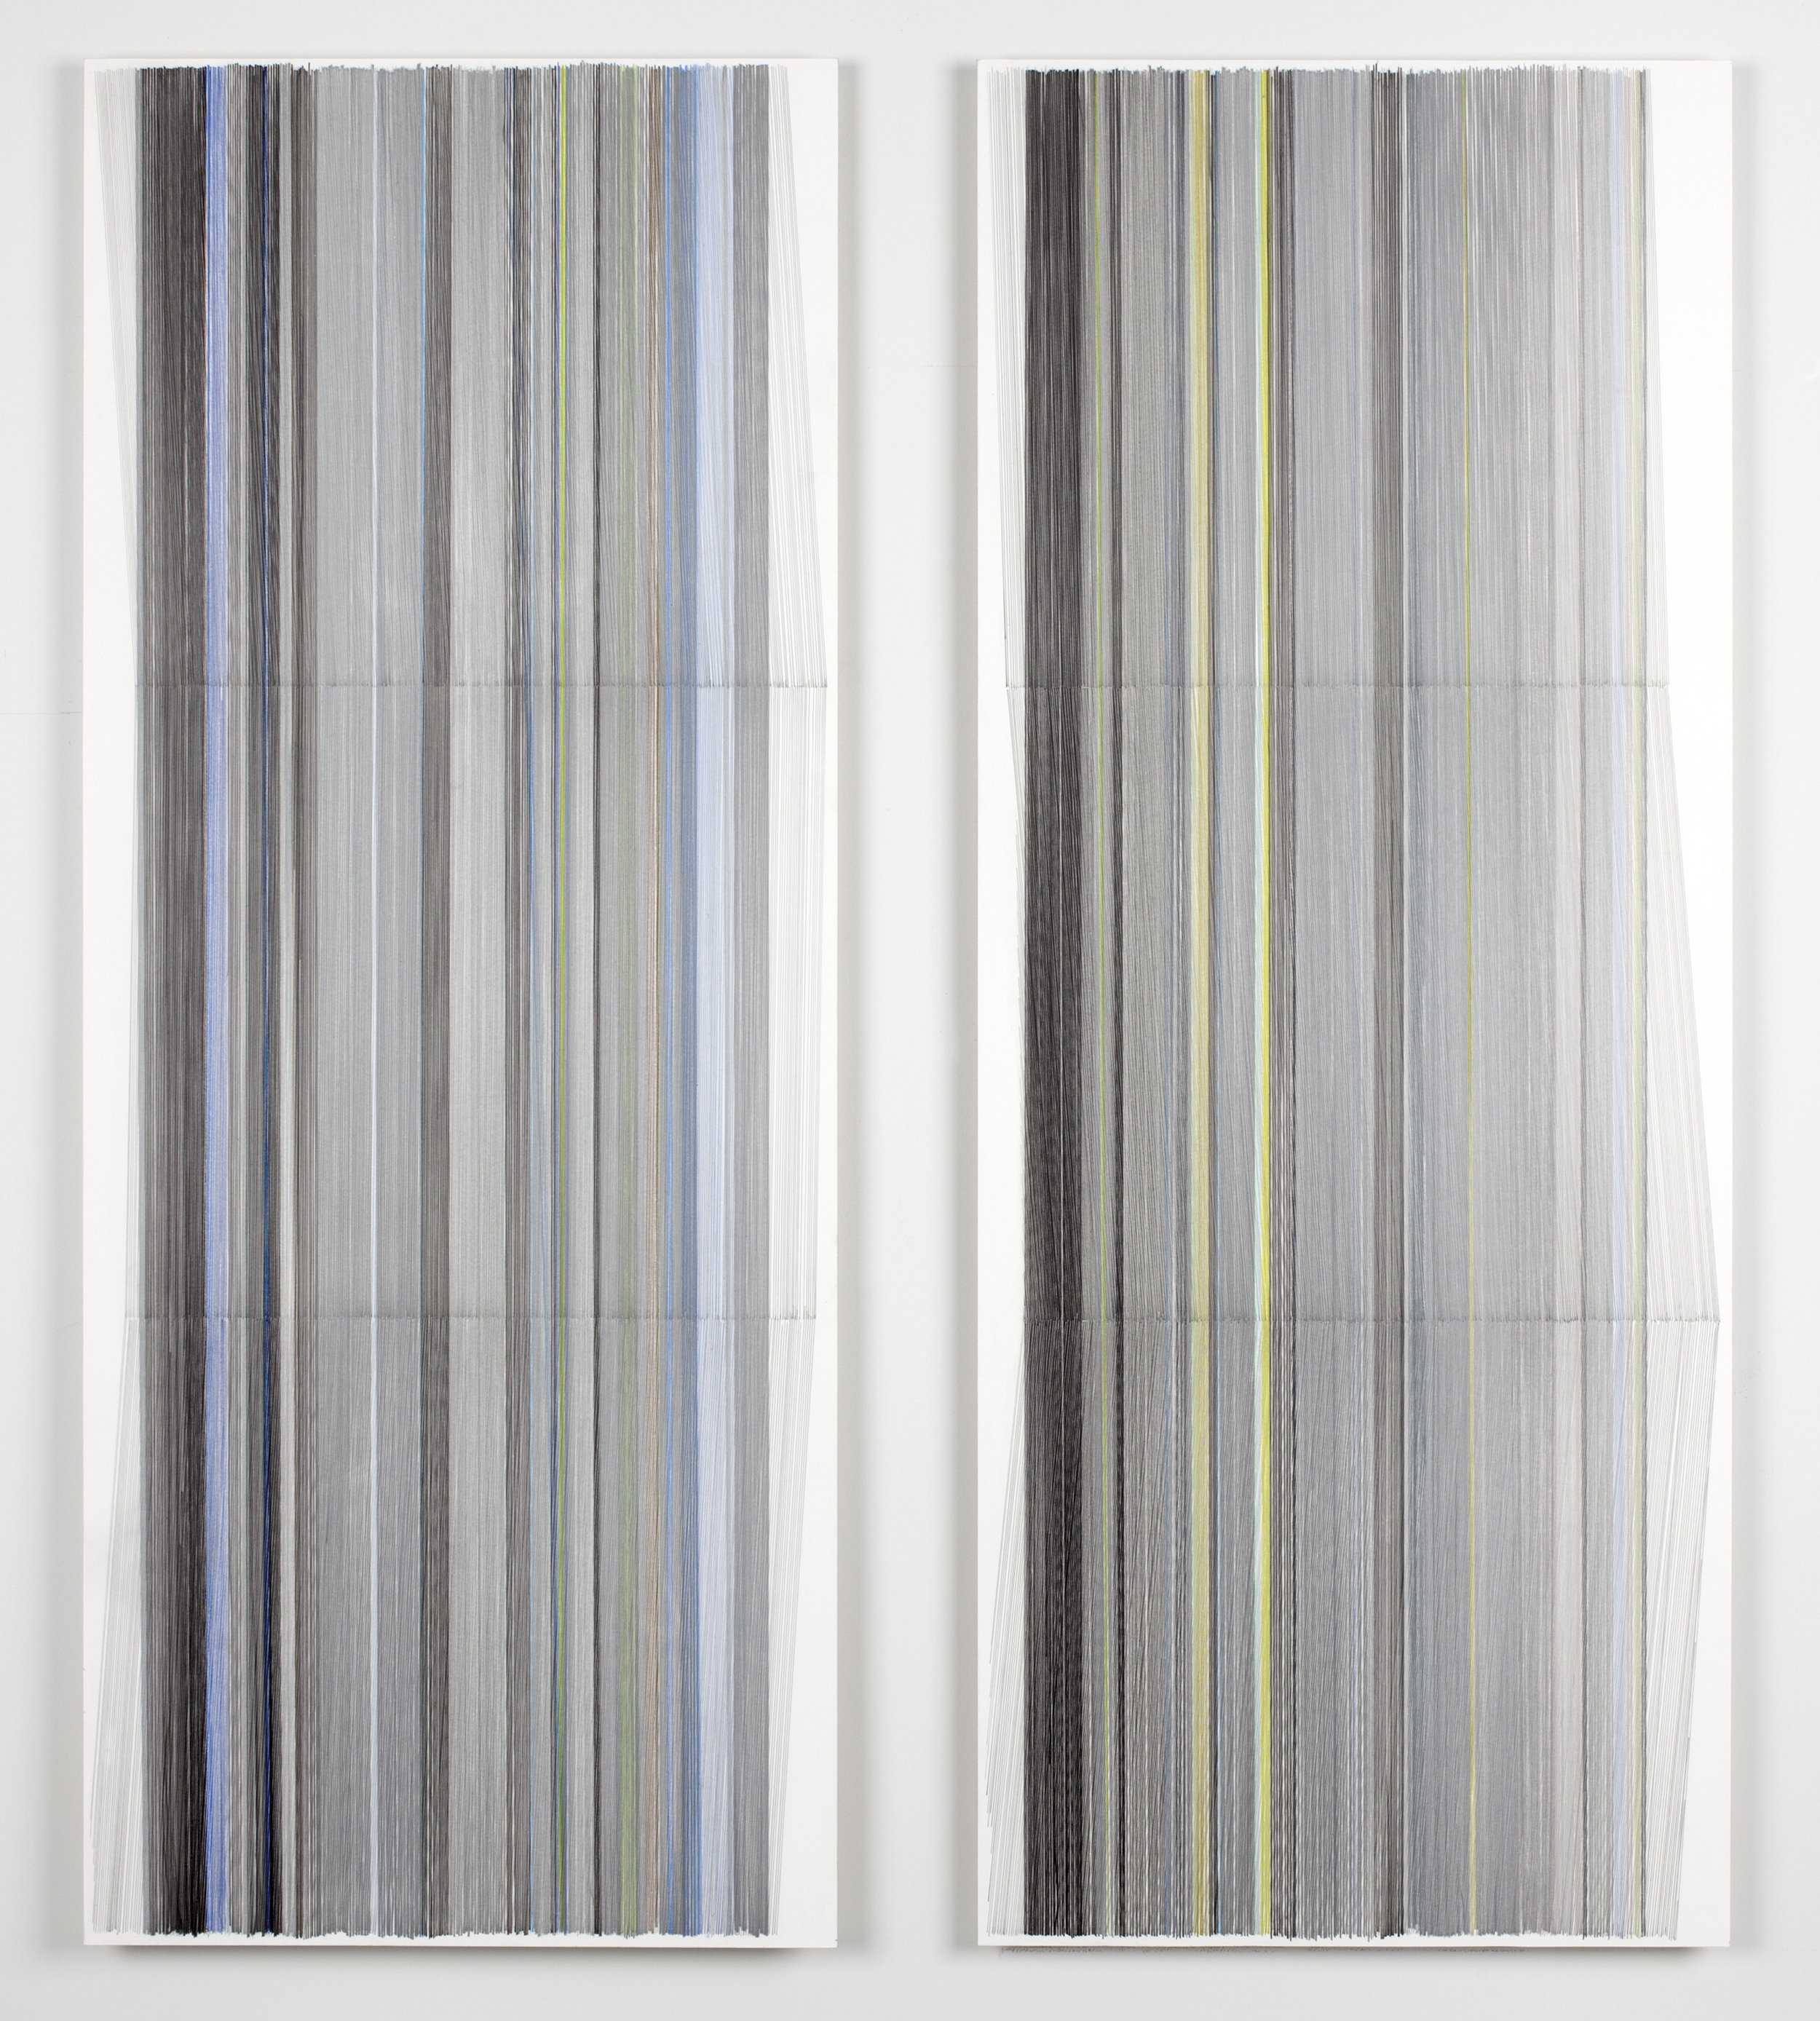 unfold 25 a&b   2016   graphite & colored pencil on mat board   24 by 50 inches each